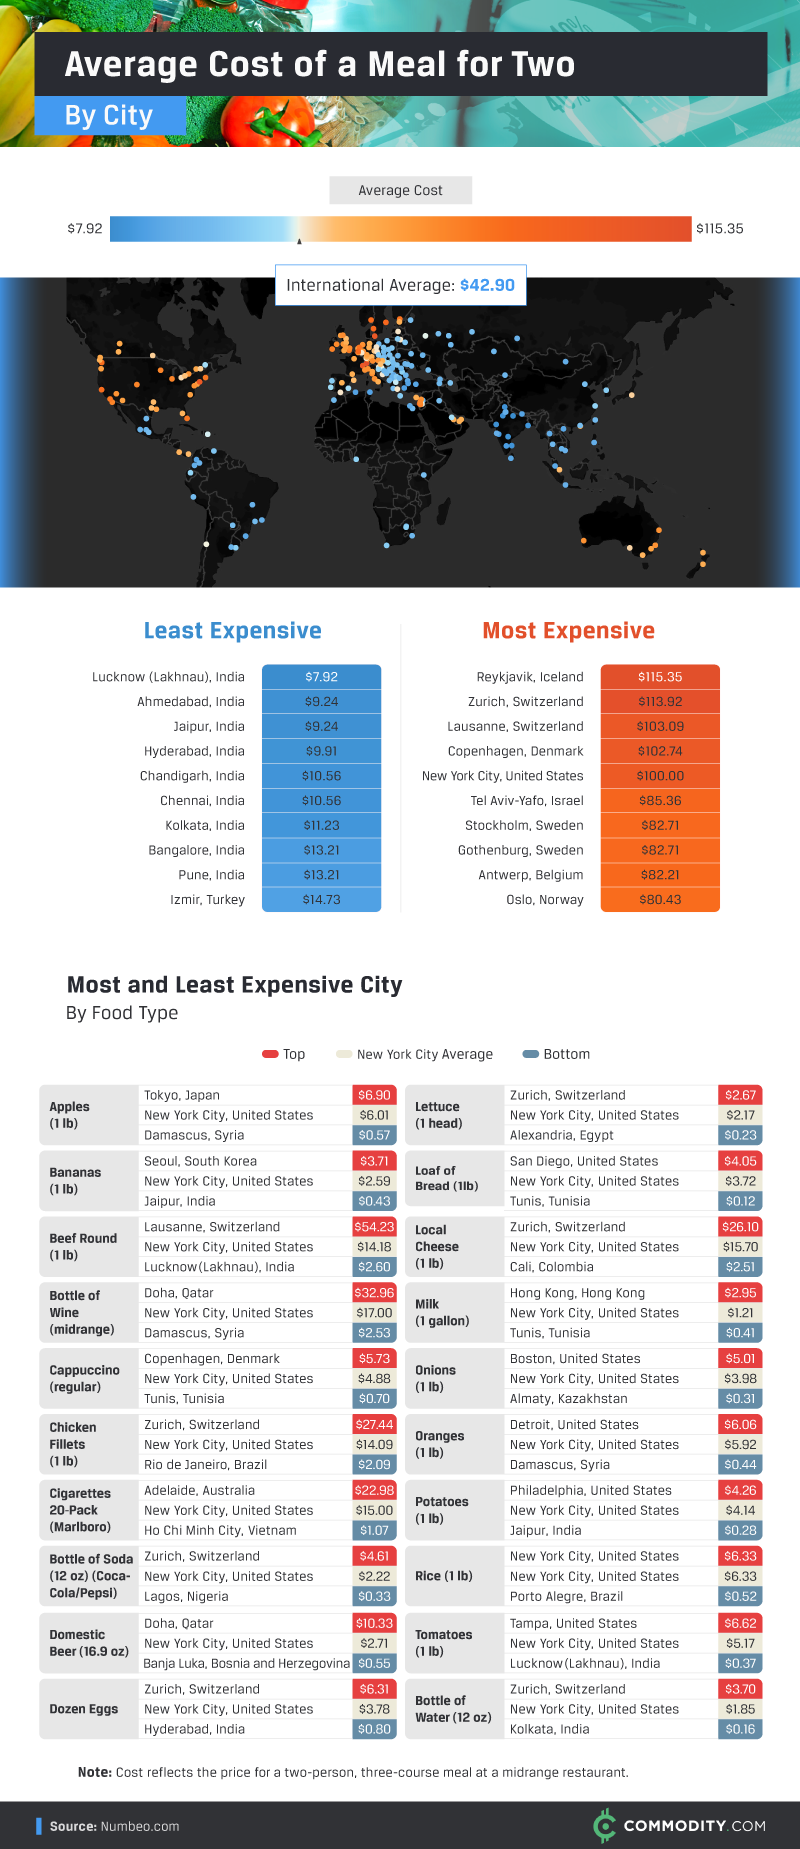 Average Cost of a Meal for Two by City